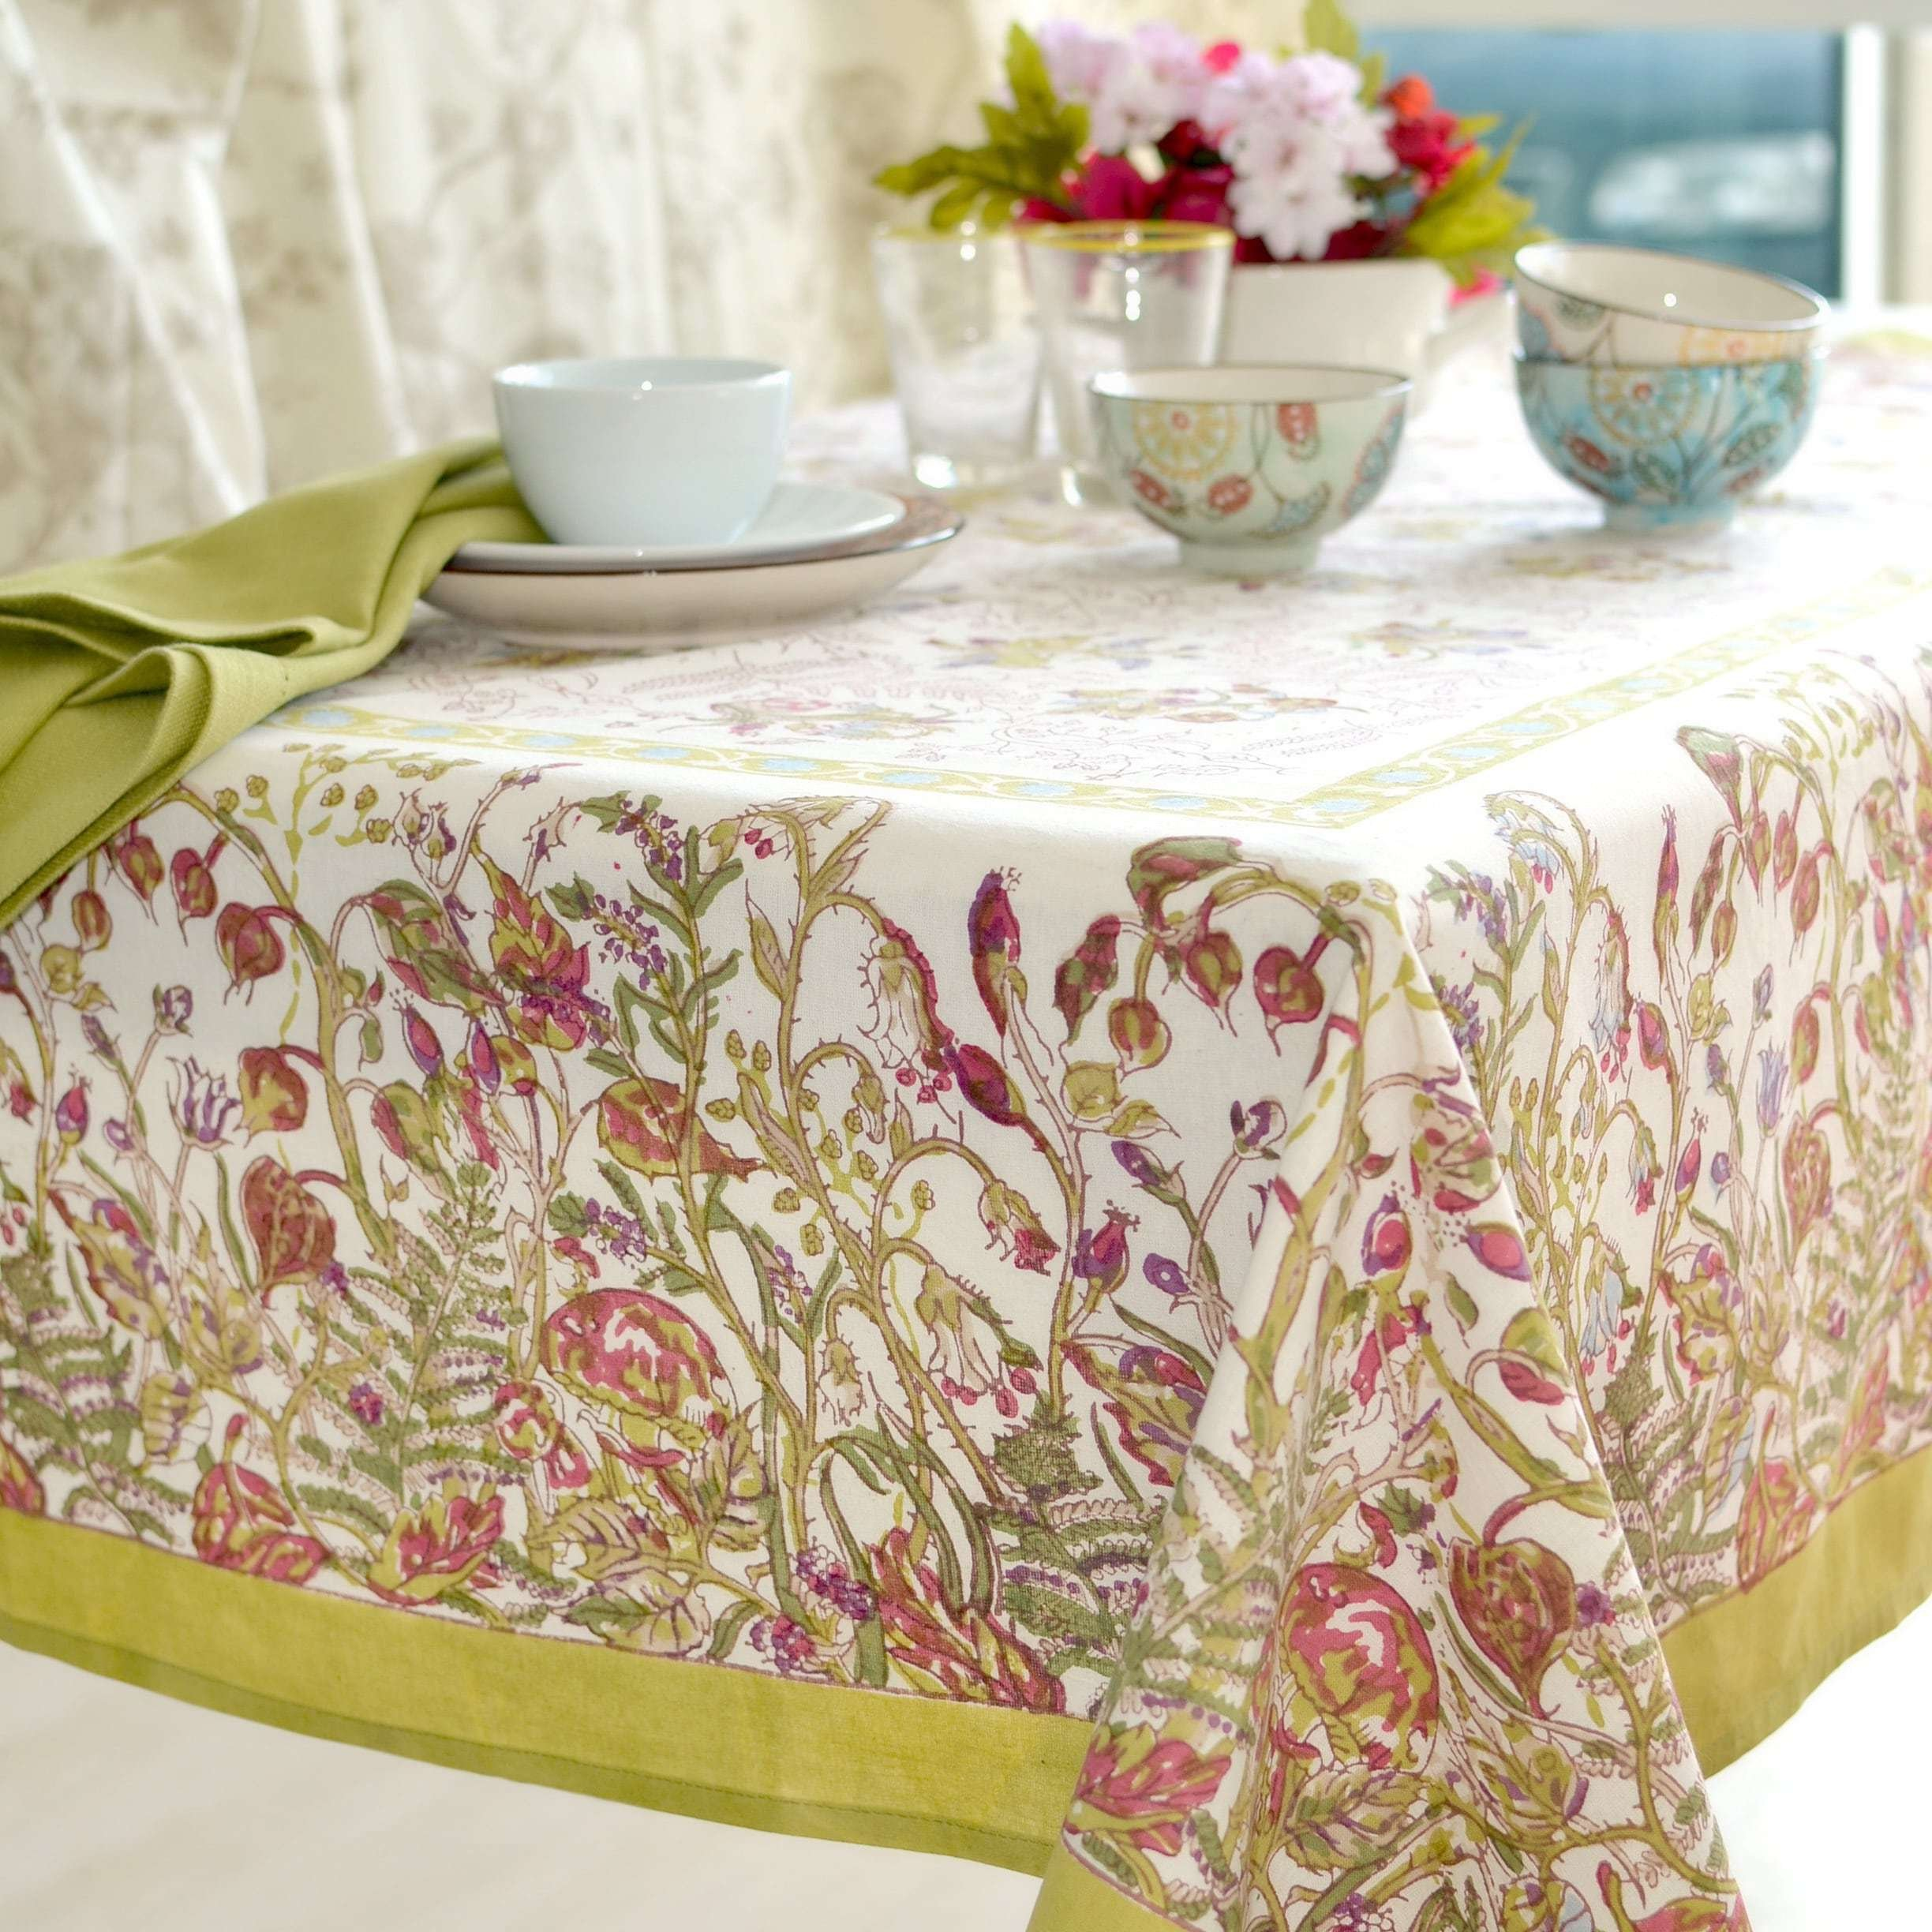 71 X 128 Inches Multi Green Petit Fleur Flower Tablecloth, 1 Piece Nature Tiny Berries Fairy Garden Themed Rectangle Small Dining Table Cover, Casual Country Traditional Plum Blue Light Green, Cotton by NaNa